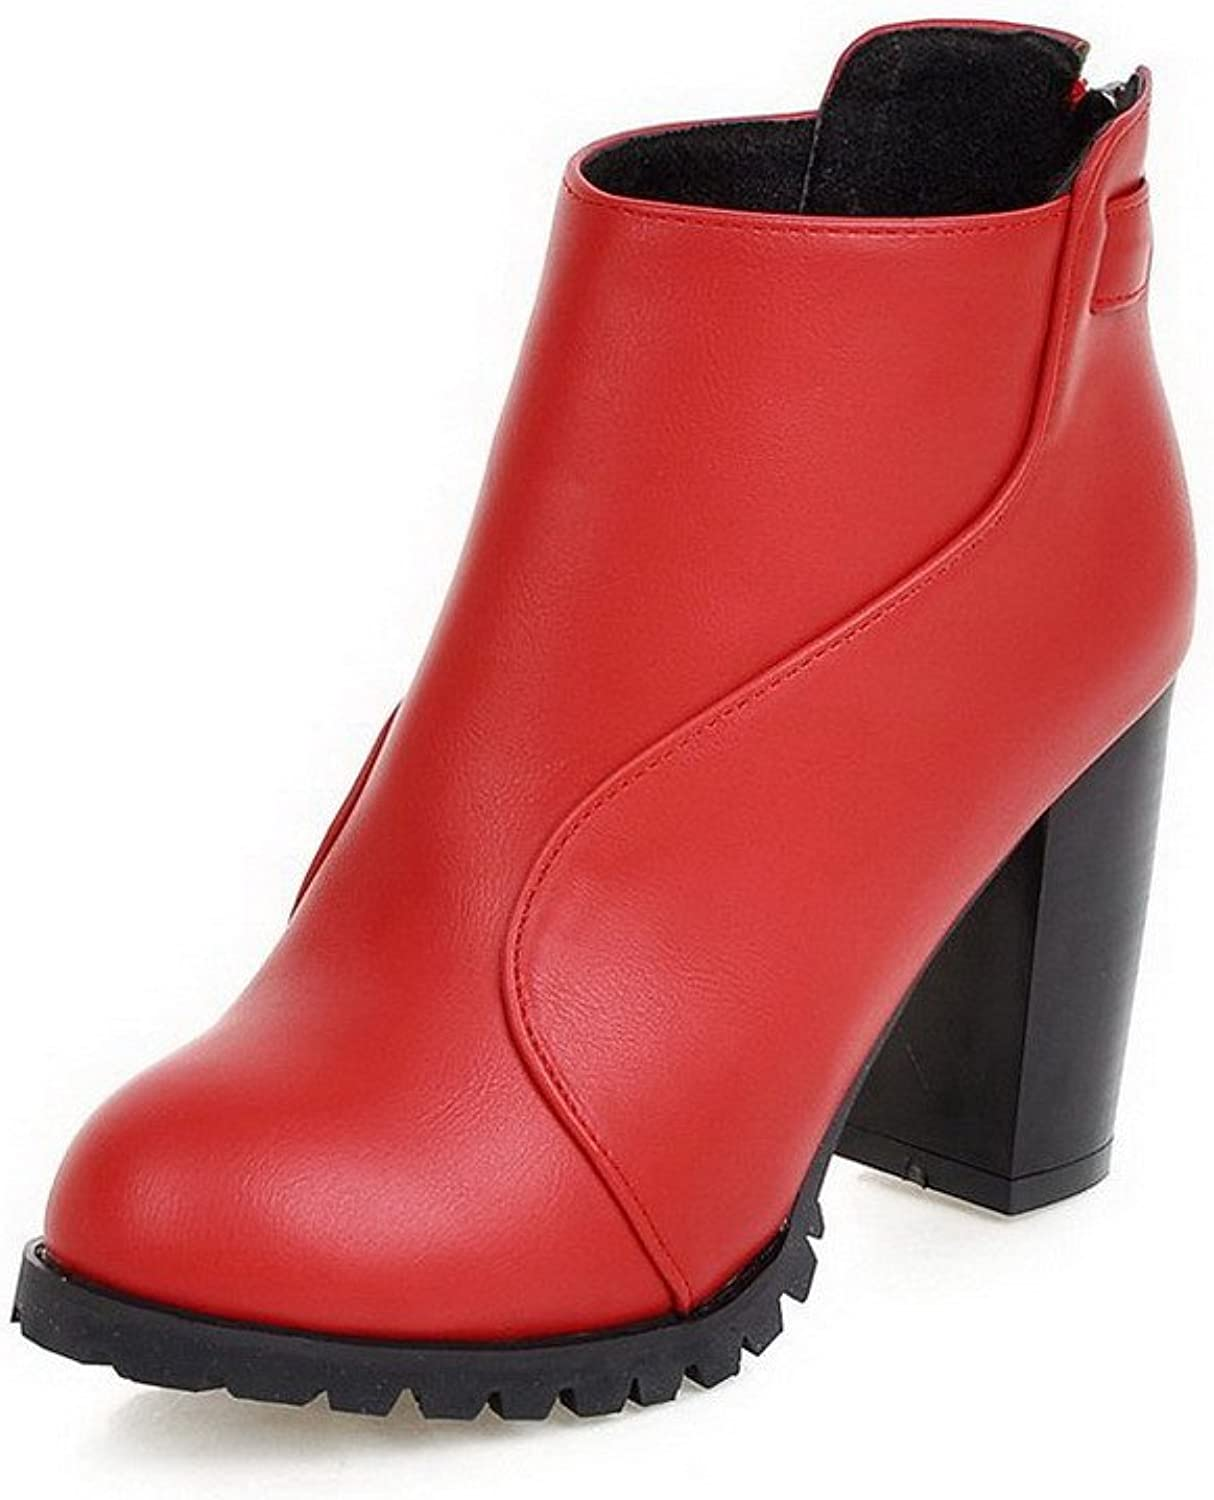 WeiPoot Women's High-Heels Solid Round Closed Toe Soft Material Zipper Boots